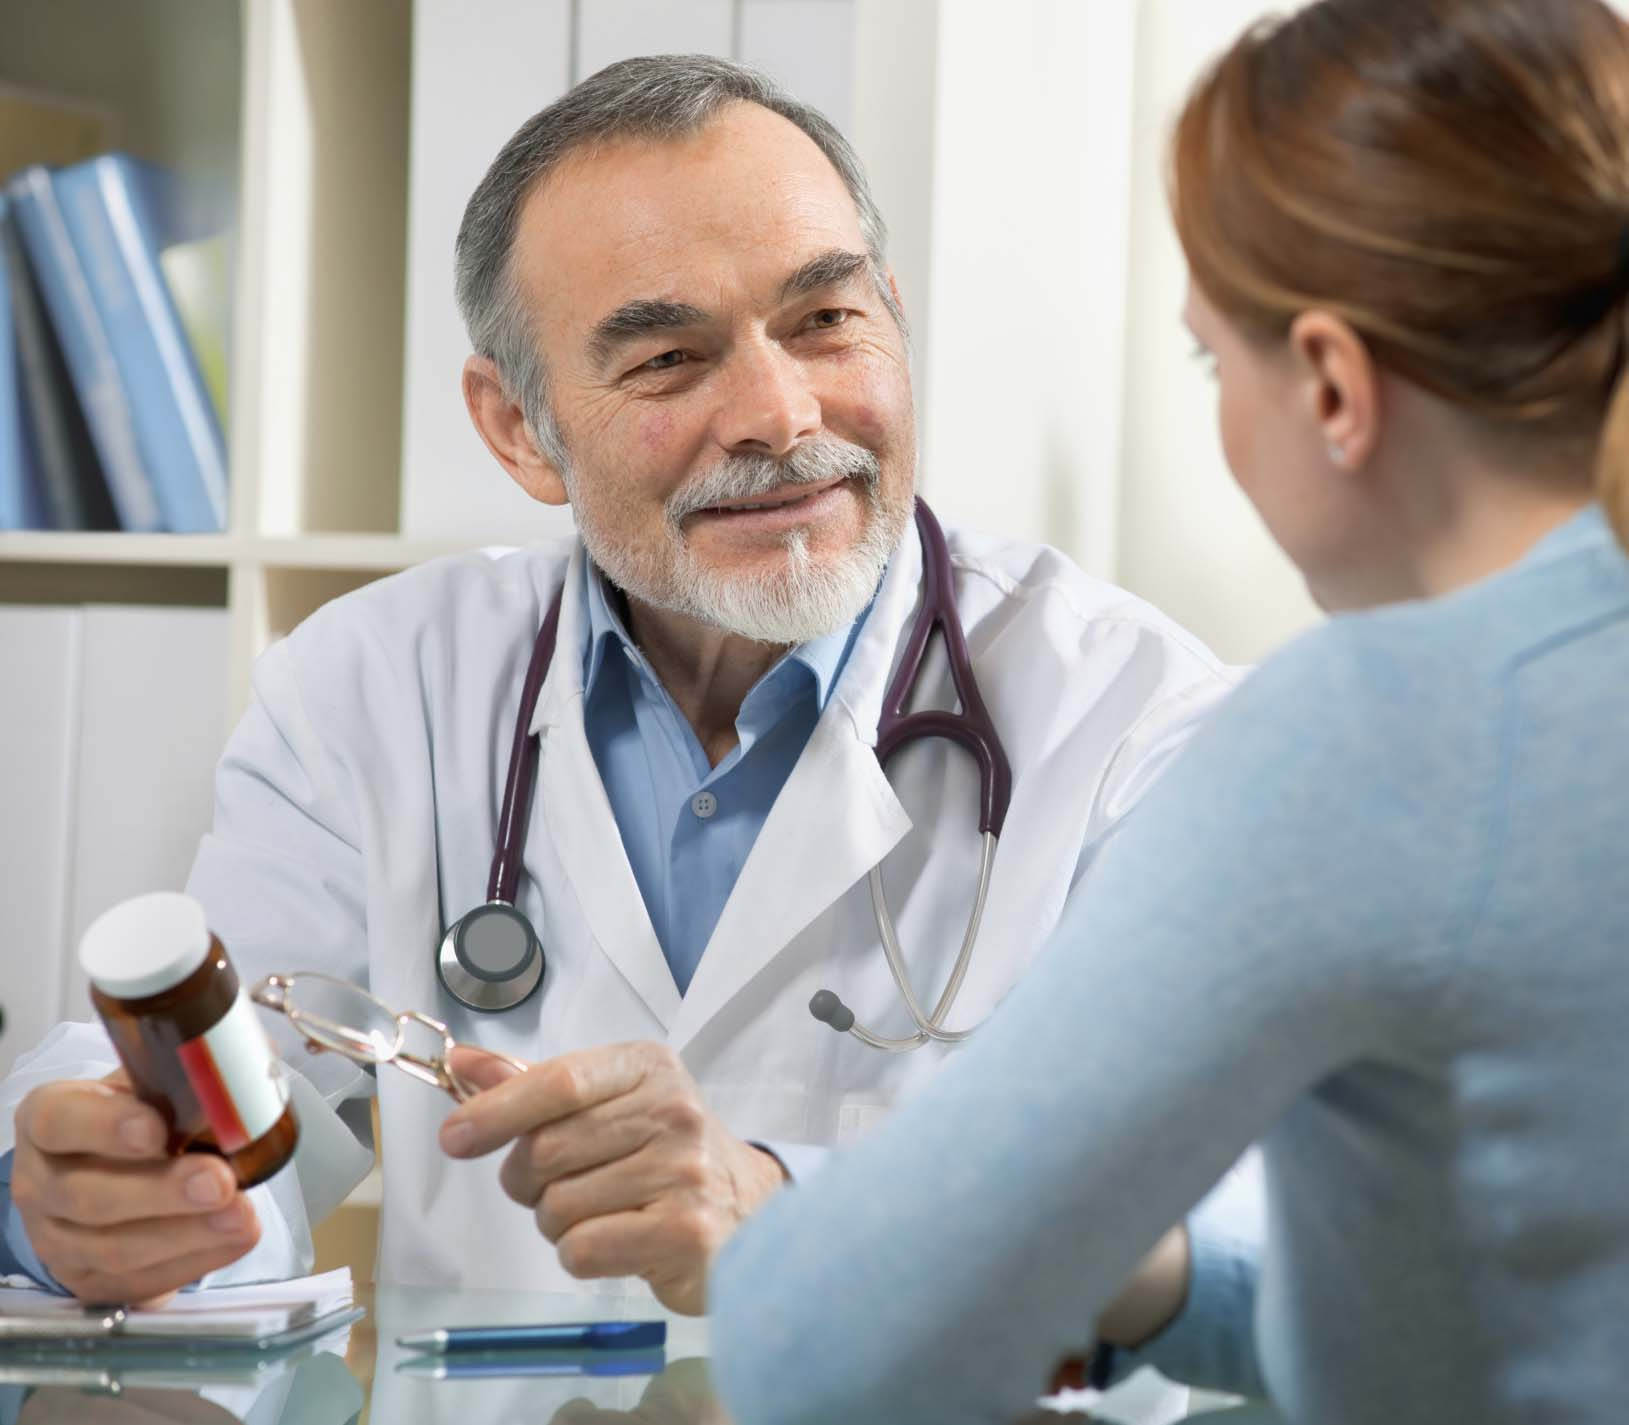 How Physician Website Can Help Build Relationship with Patients